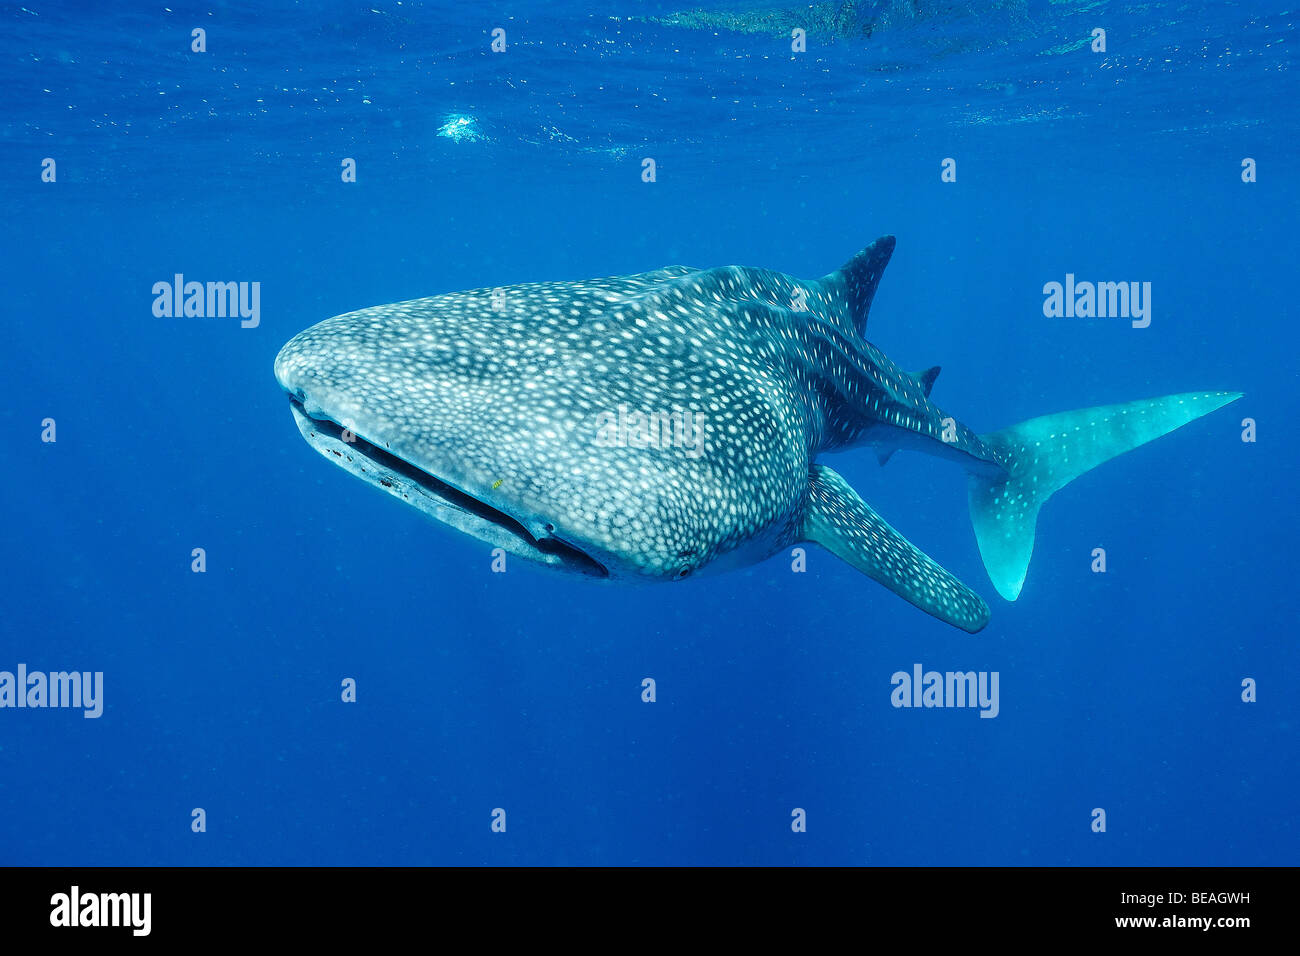 Whale shark swimming, Bay of Tadjoura, Gulf of Aden - Stock Image